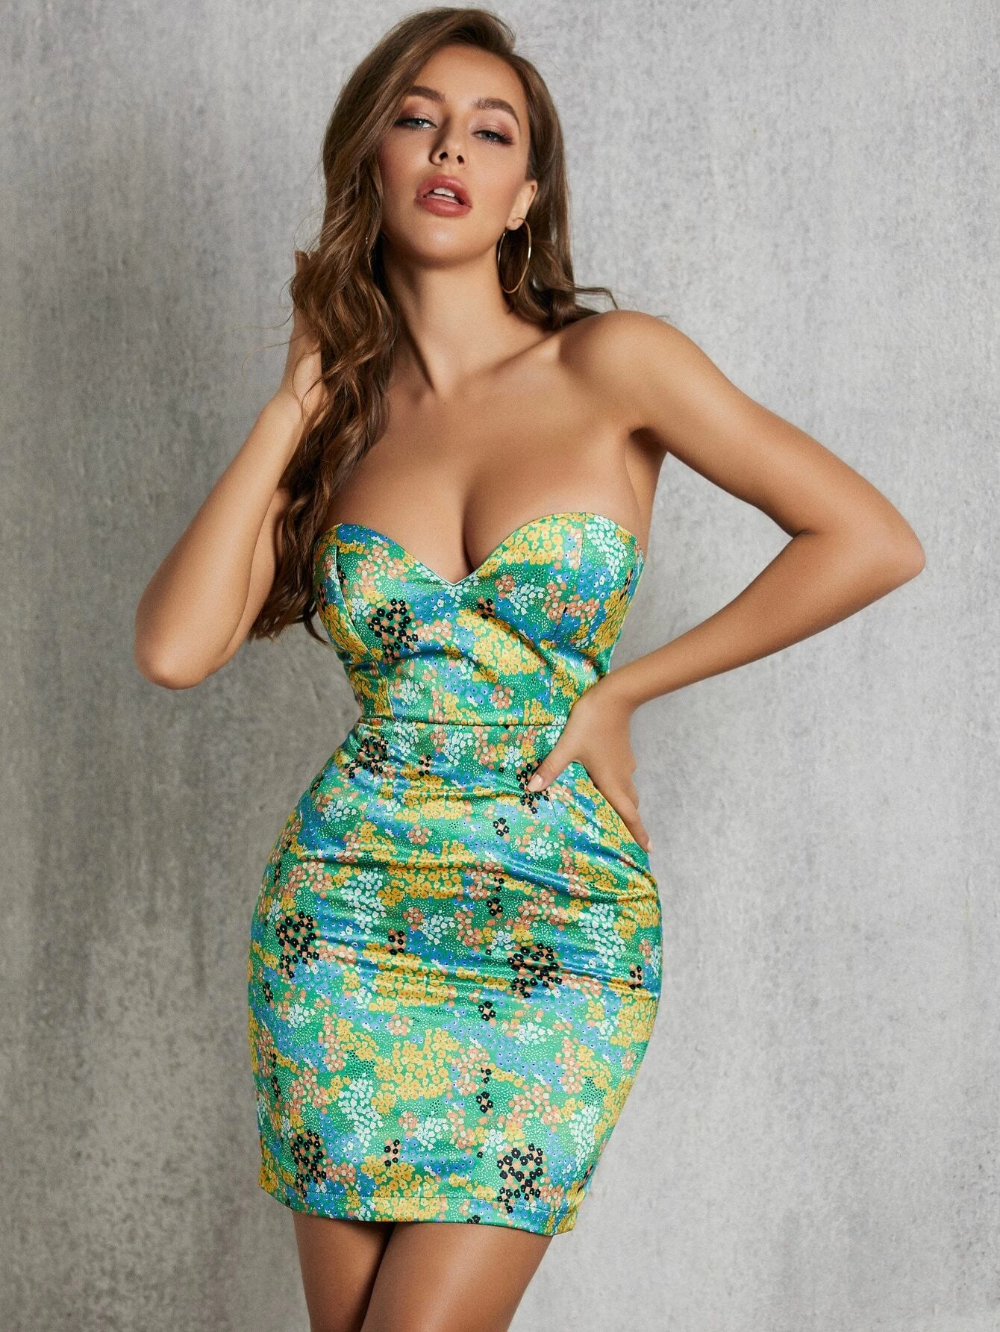 Sbetro Ditsy Floral Satin Tube Dress Shein South Africa Tube Dress Dresses Floral Bodycon [ 1332 x 1000 Pixel ]